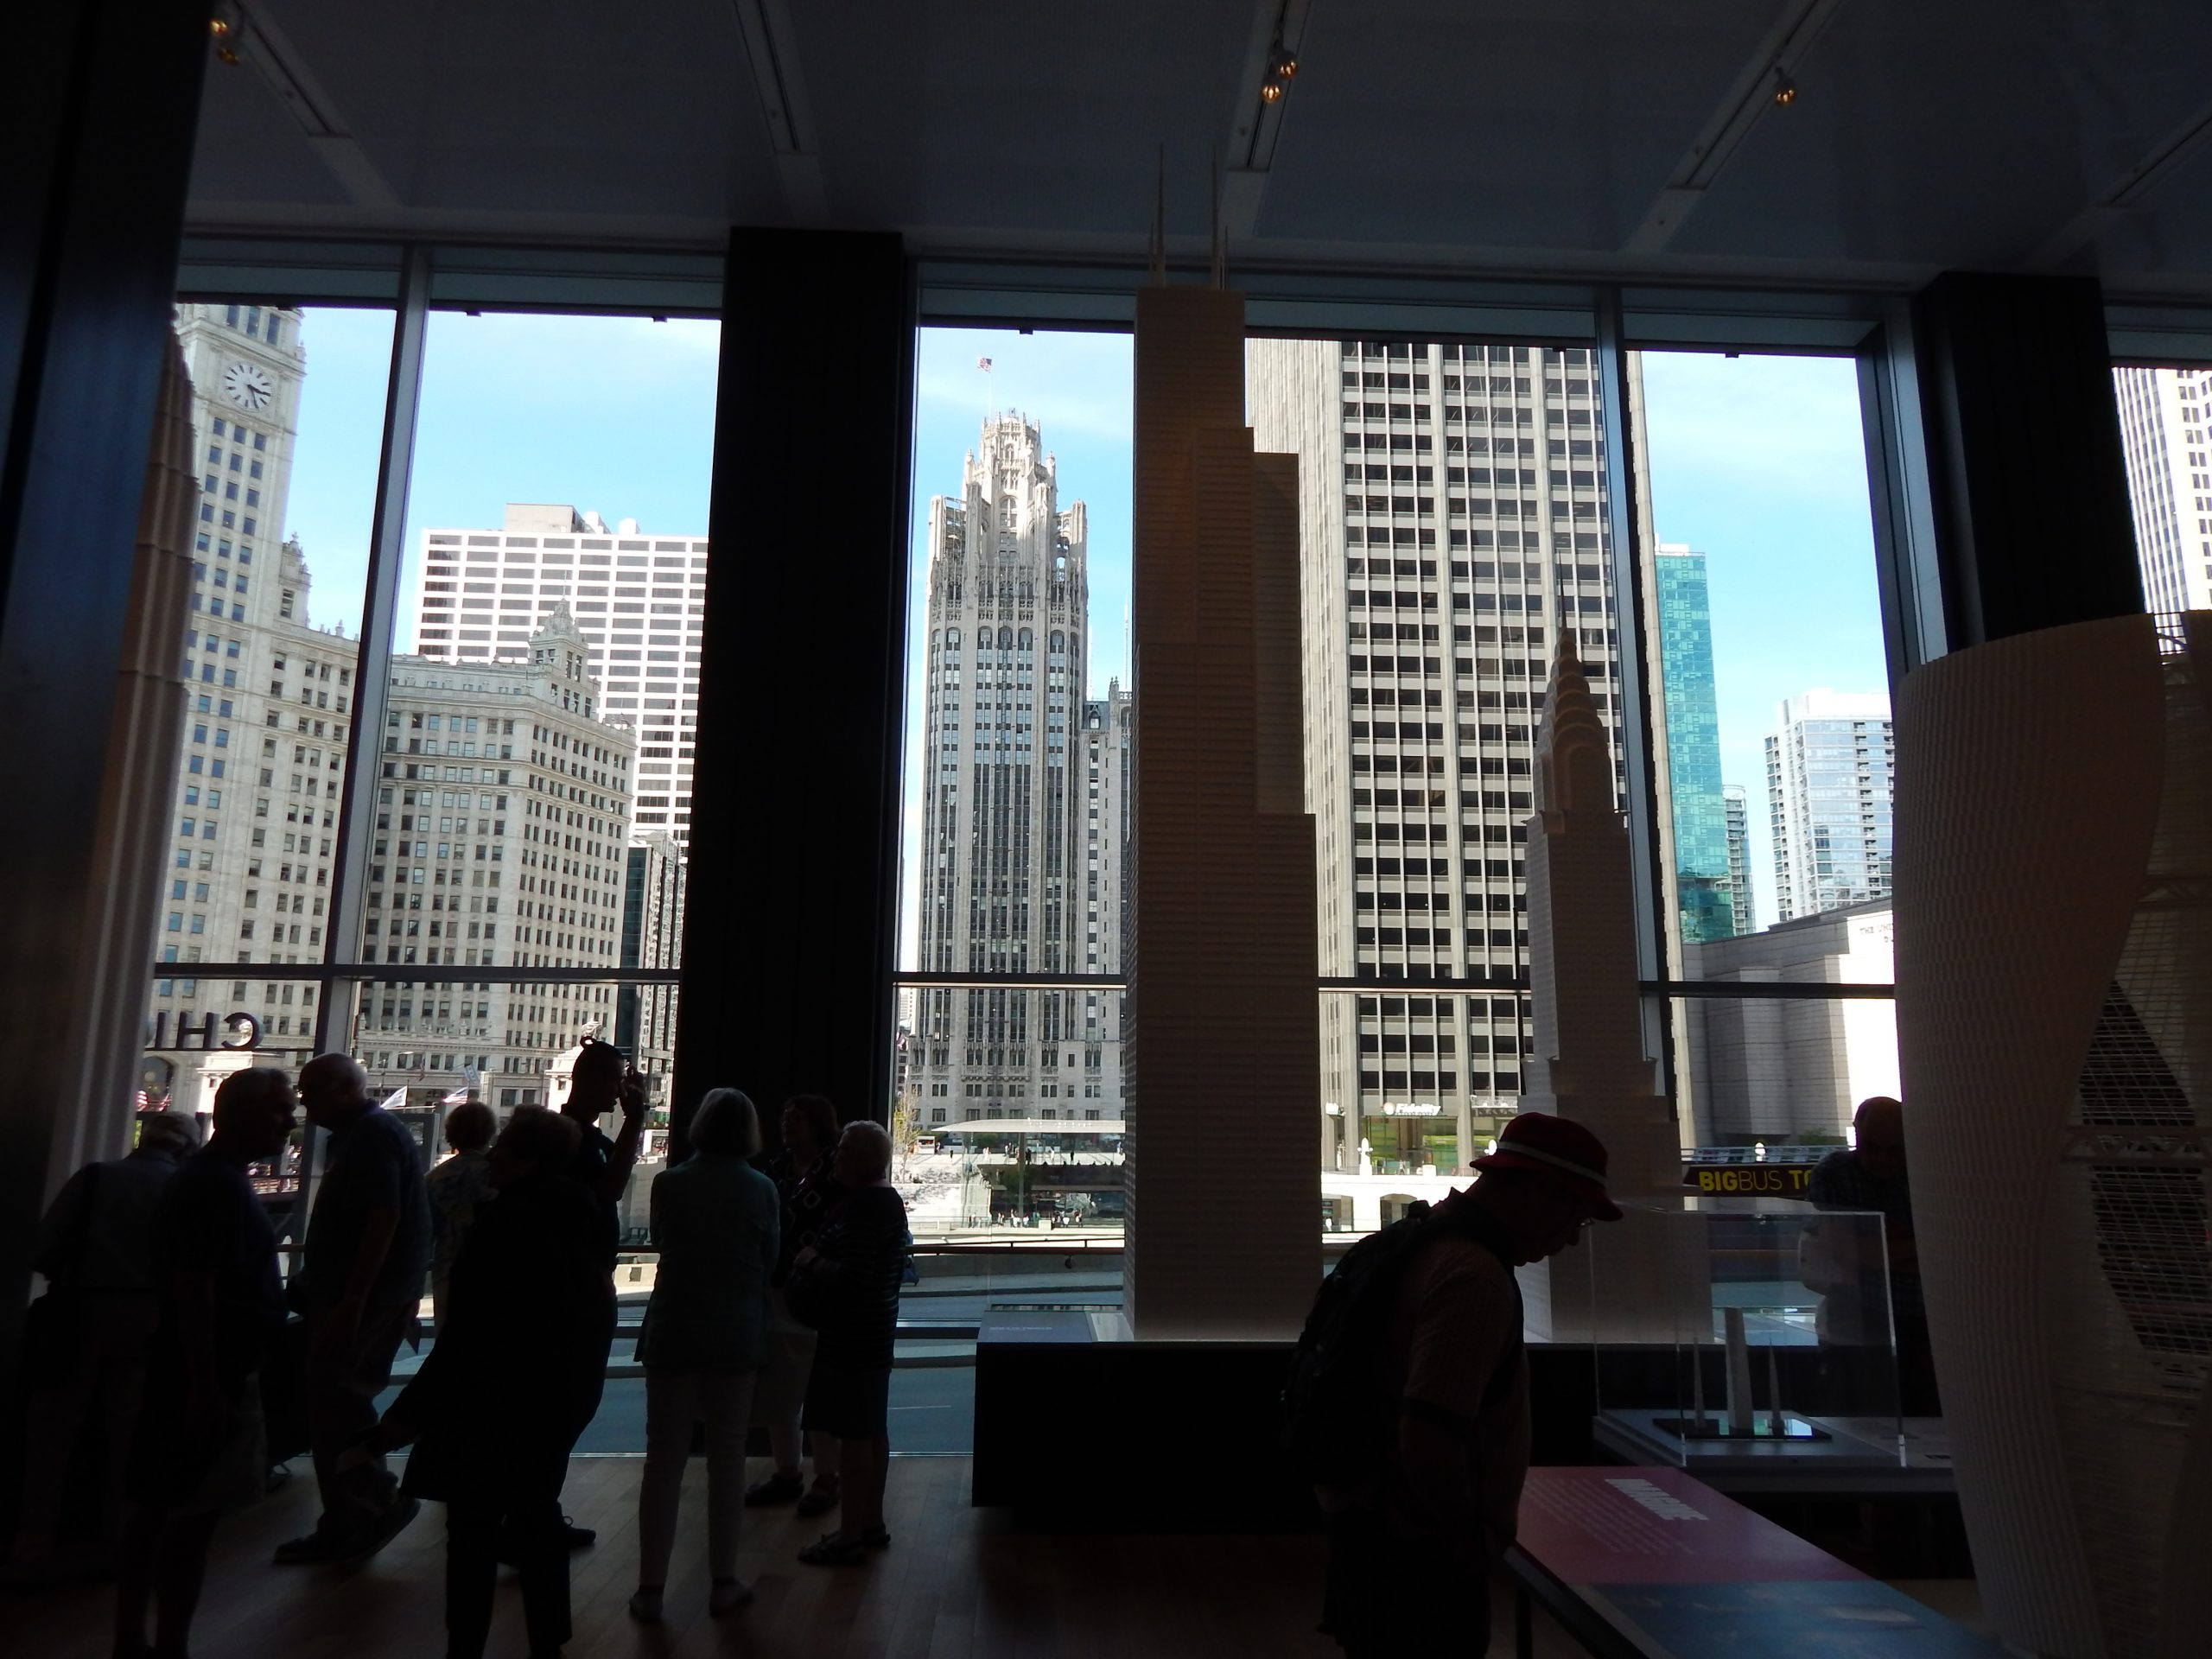 CAC's new home boasts a jaw-dropping view of Chicago architecture.